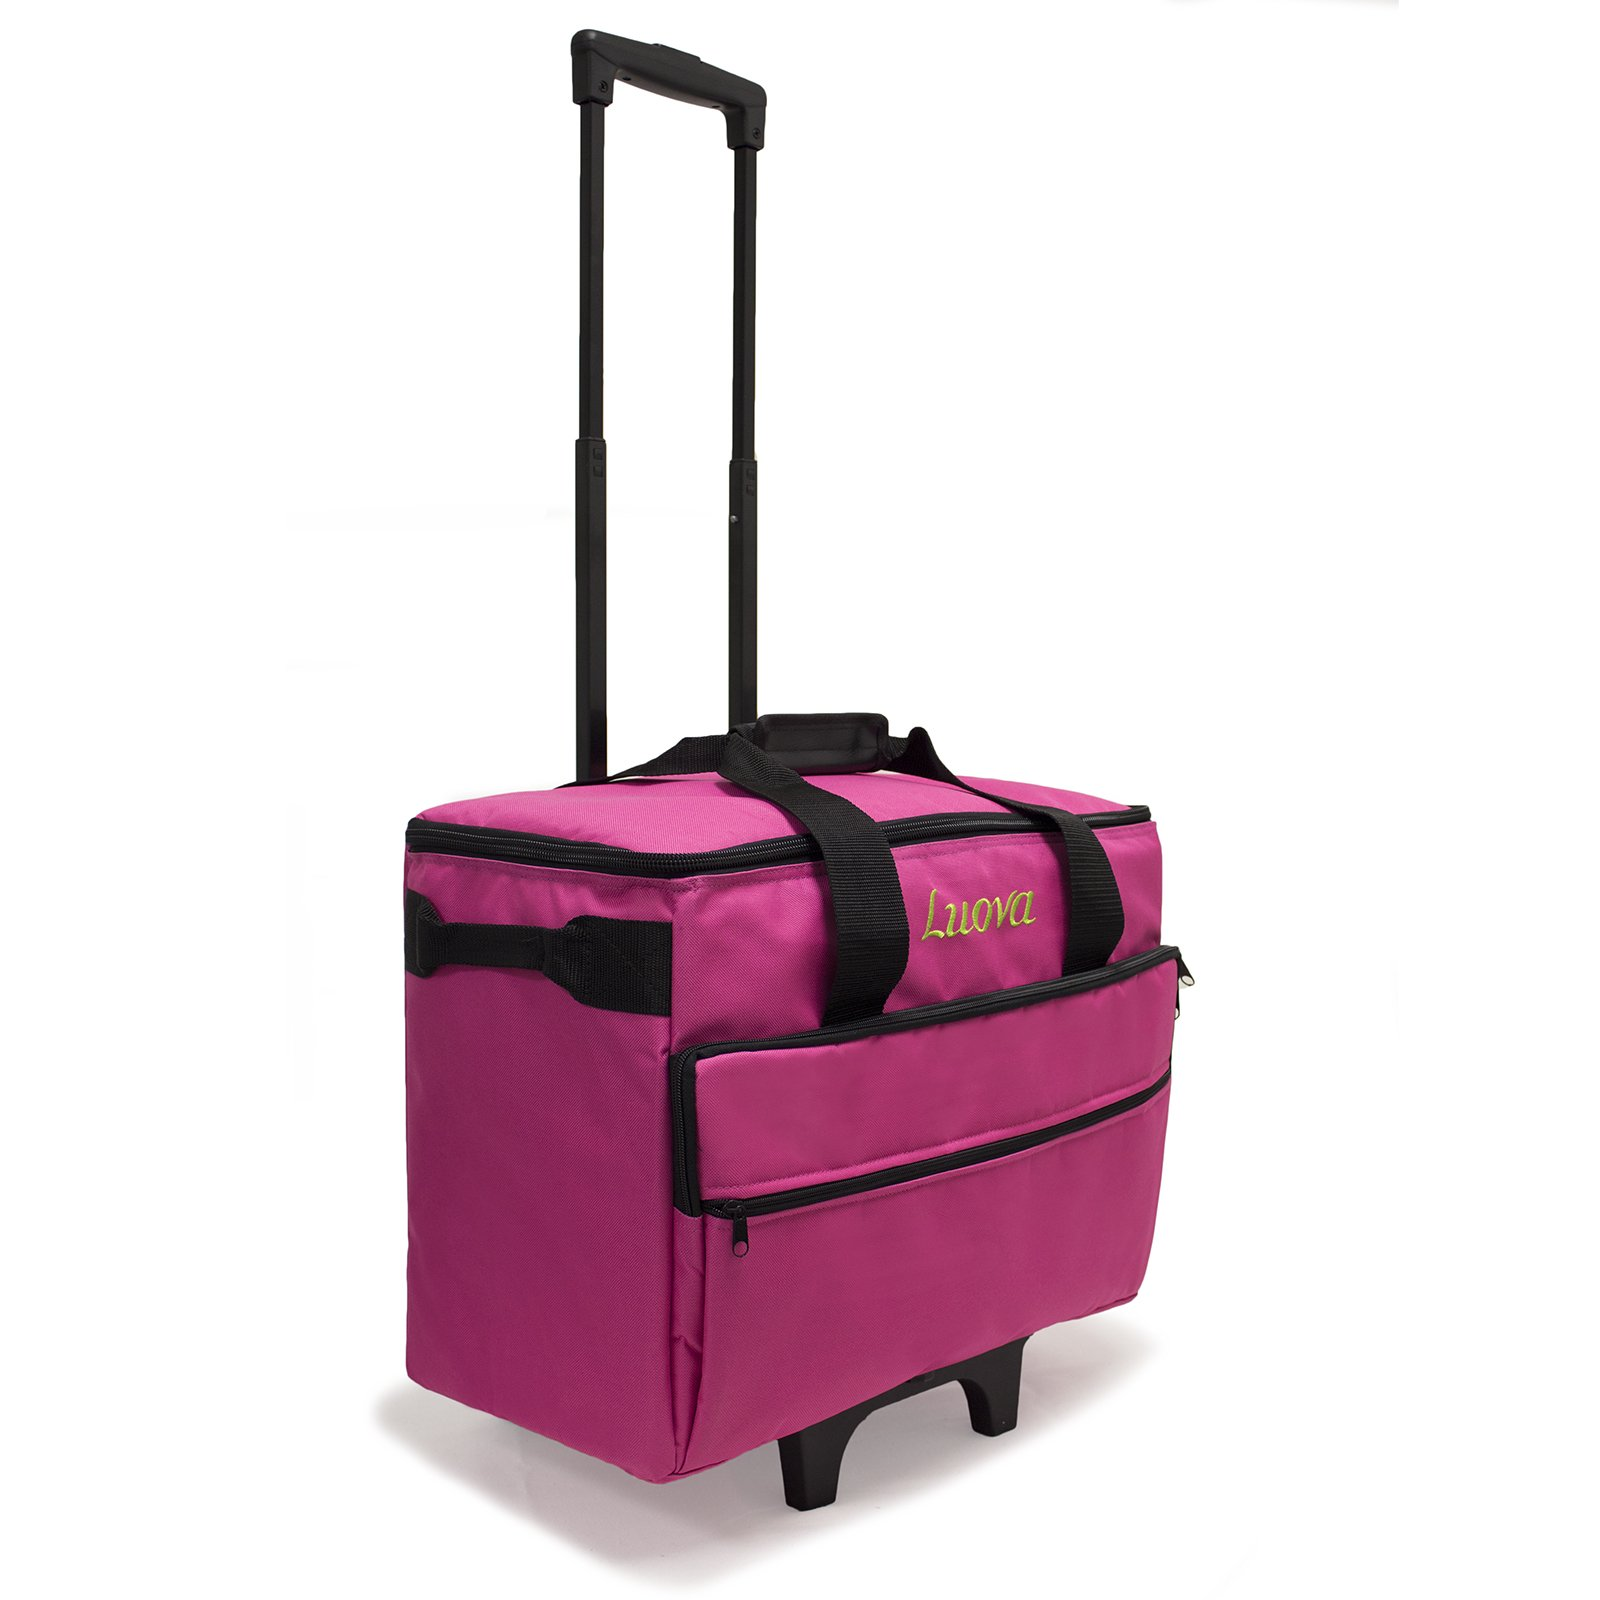 Luova 19'' Rolling Sewing Machine Trolley in Pink by Luova